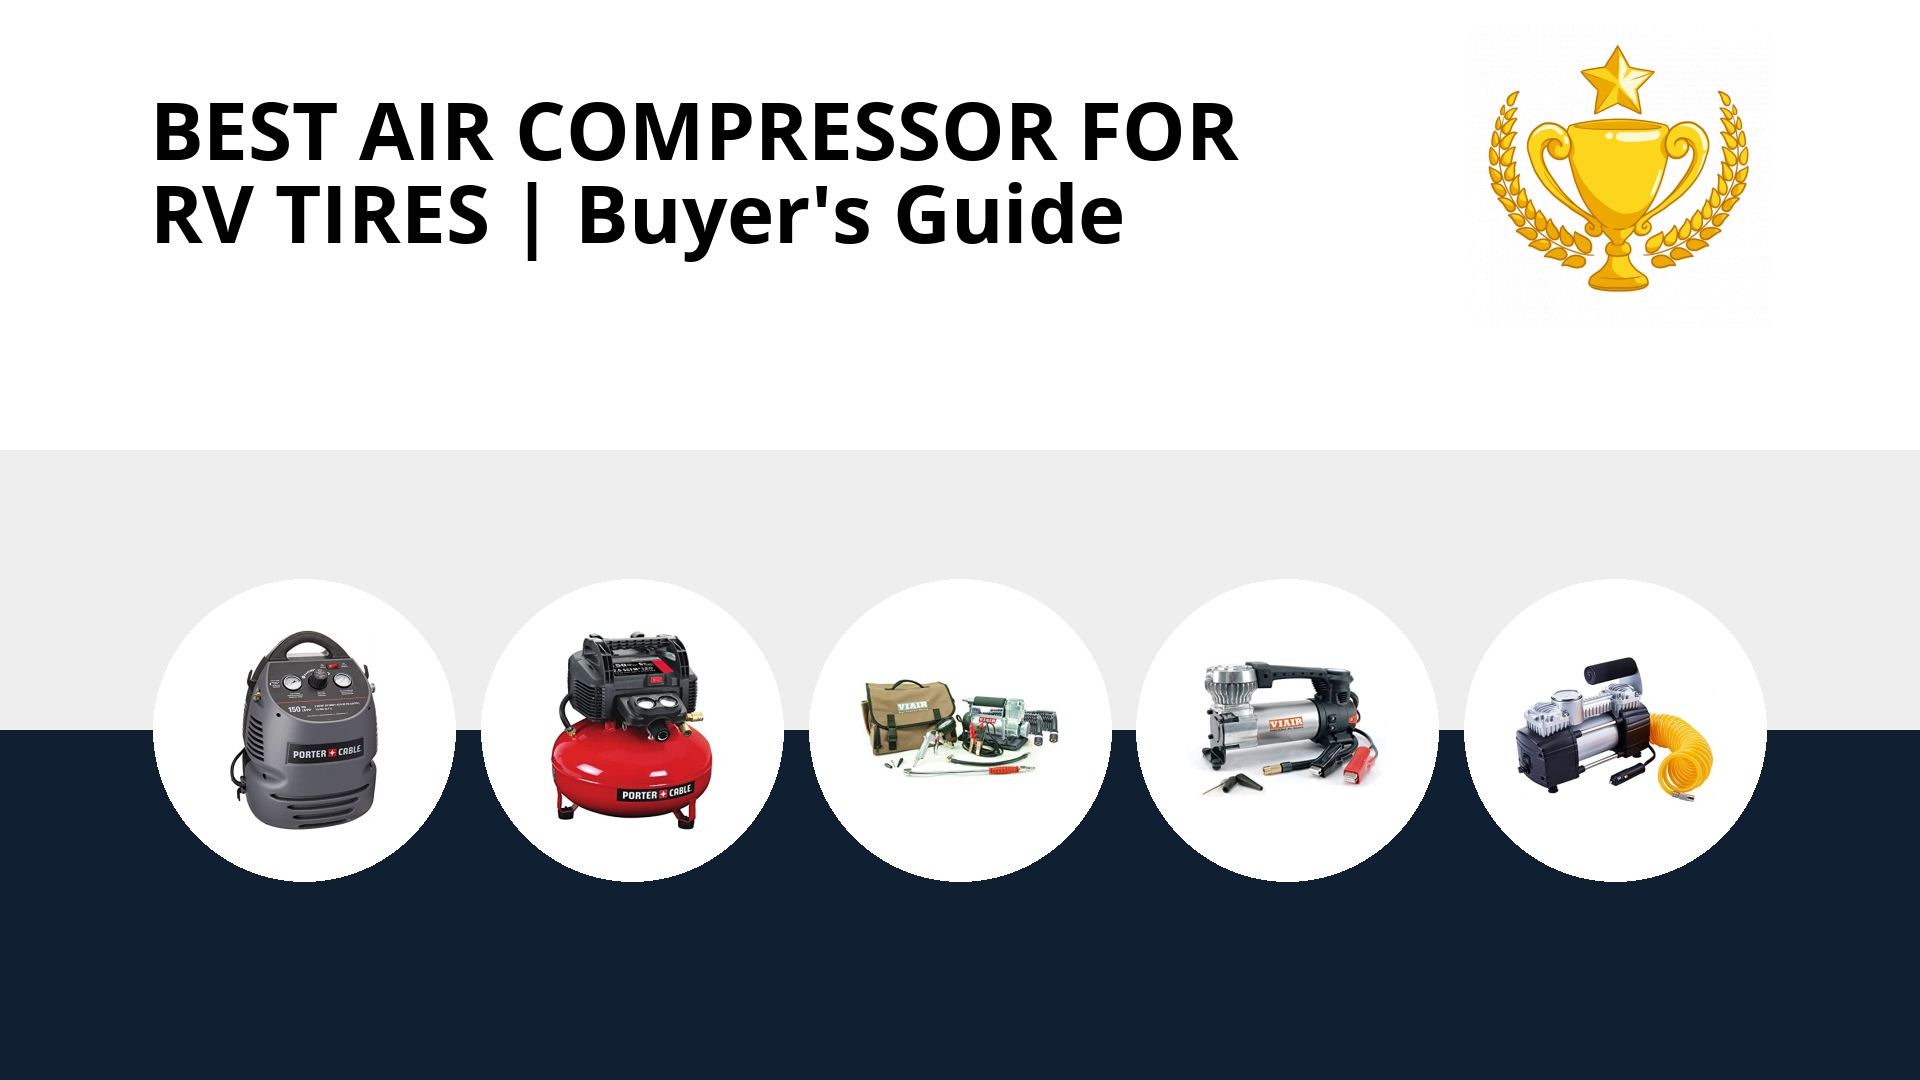 Best Air Compressor For Rv Tires: image